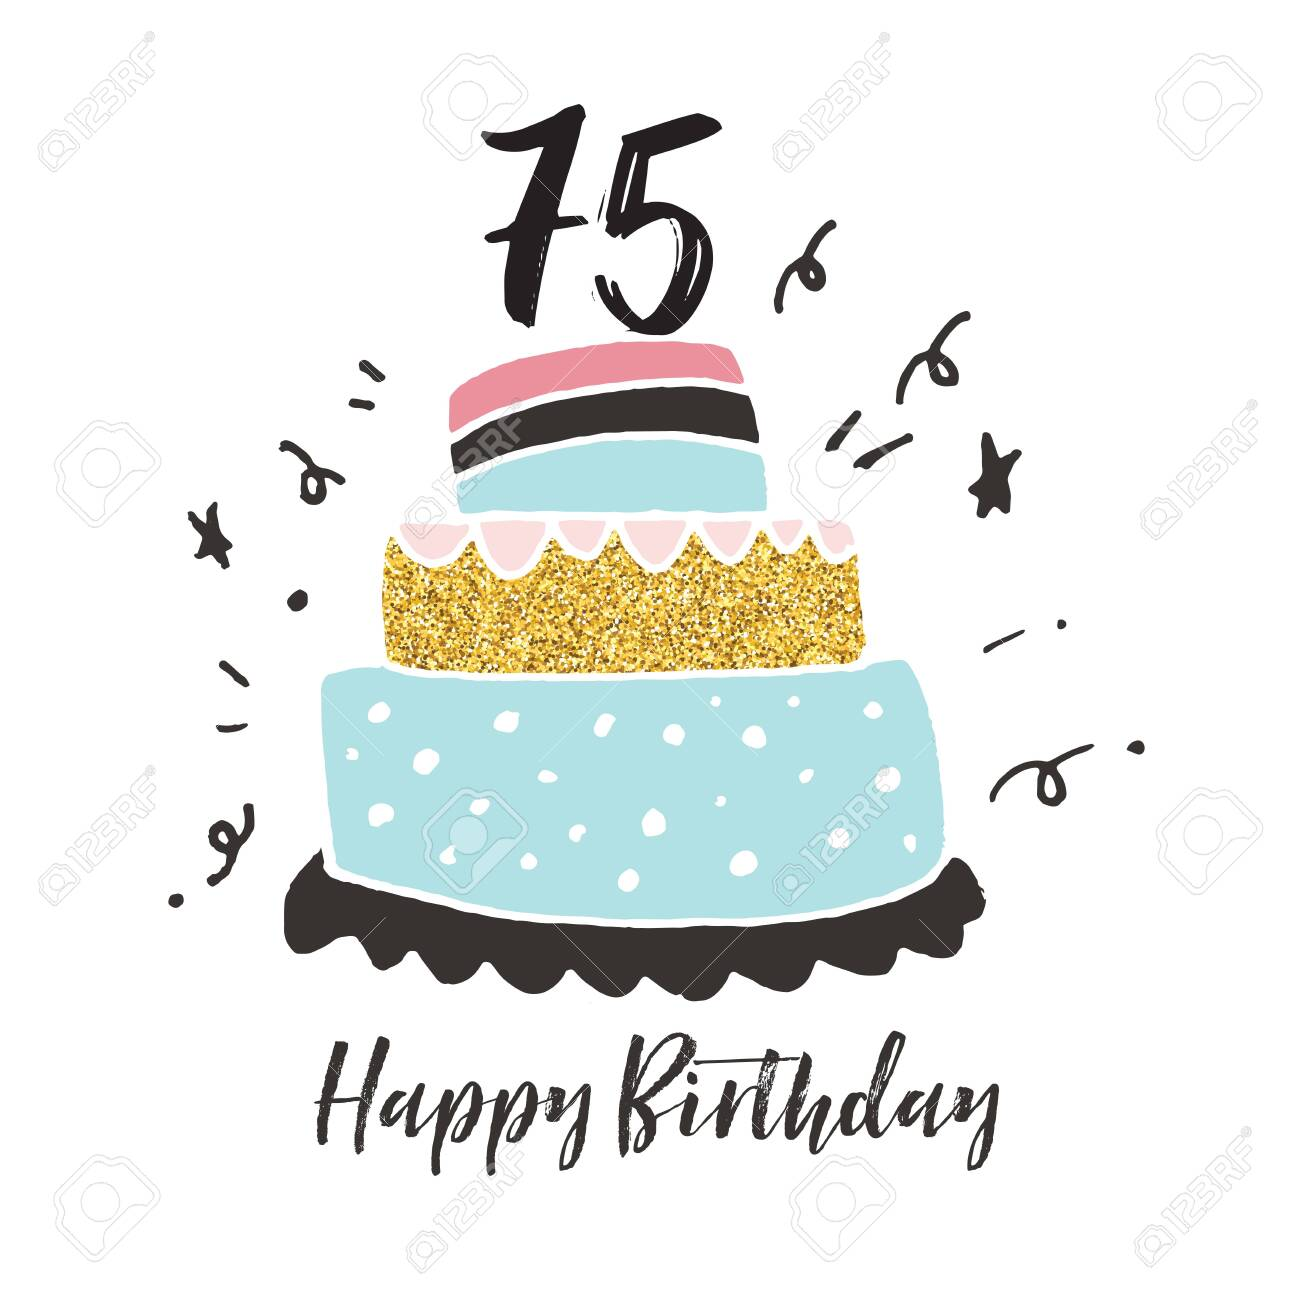 Fantastic 75Th Birthday Hand Drawn Cake Birthday Card Stock Photo Picture Funny Birthday Cards Online Bapapcheapnameinfo